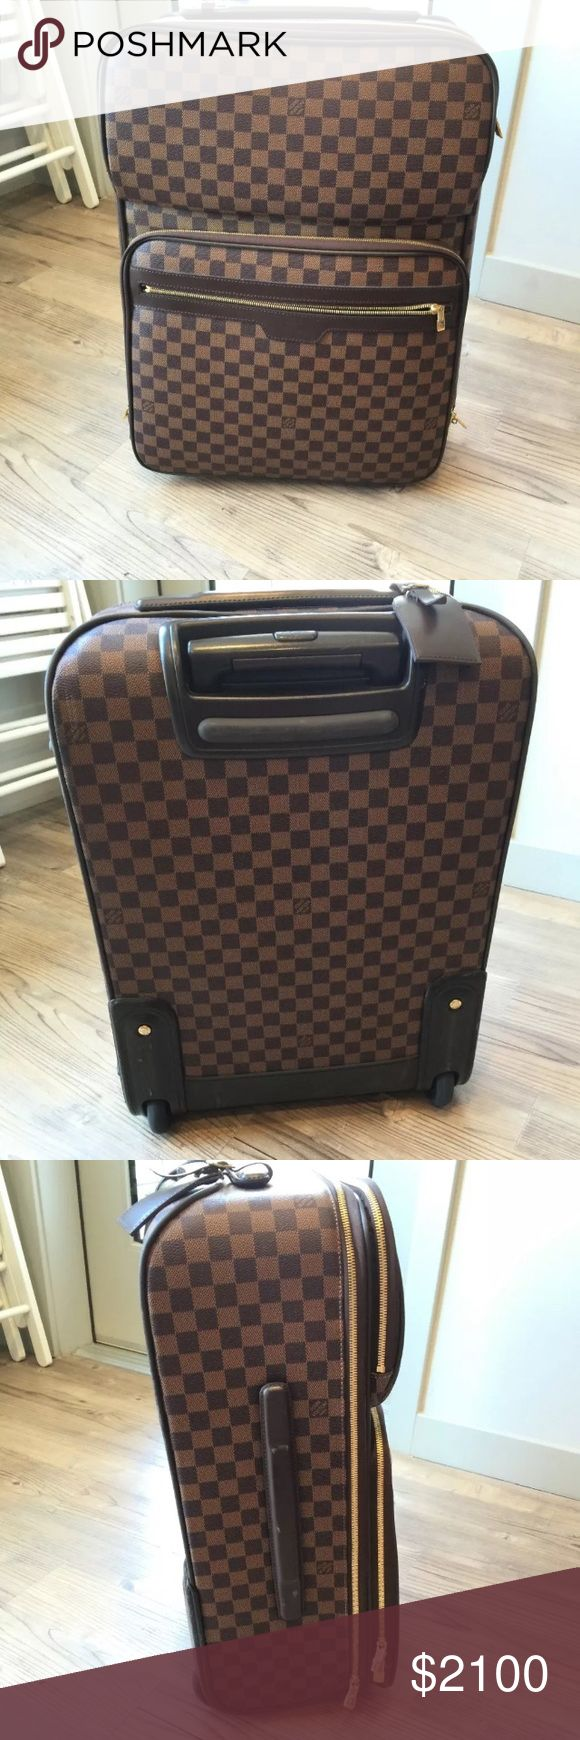 Best 25 cabin luggage size ideas on pinterest cabin bag for Cabin bag size